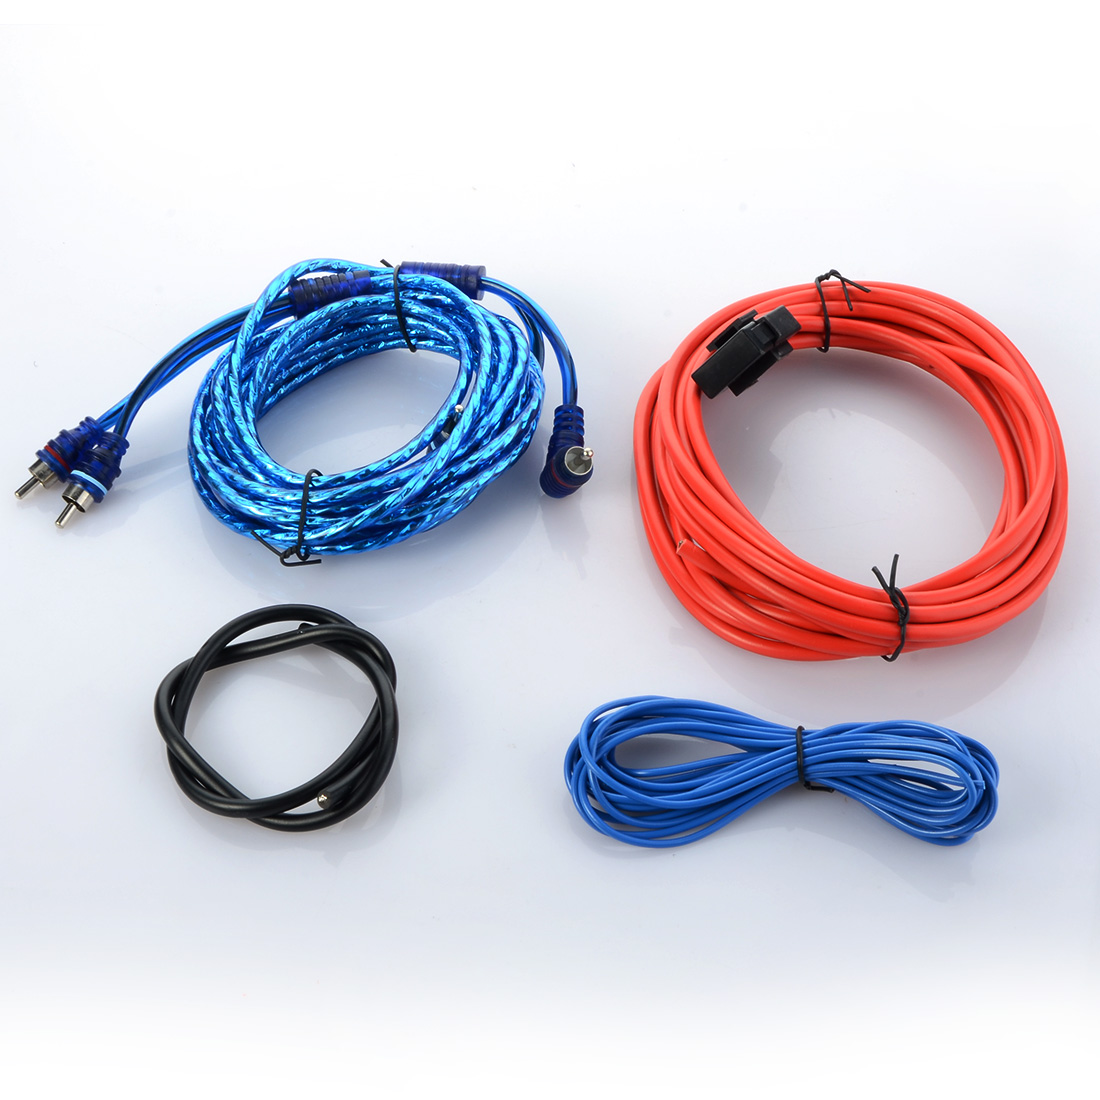 medium resolution of audio speaker wiring kit cable amplifier subwoofer speaker installation wire 8ga in cables adapters sockets from automobiles motorcycles on